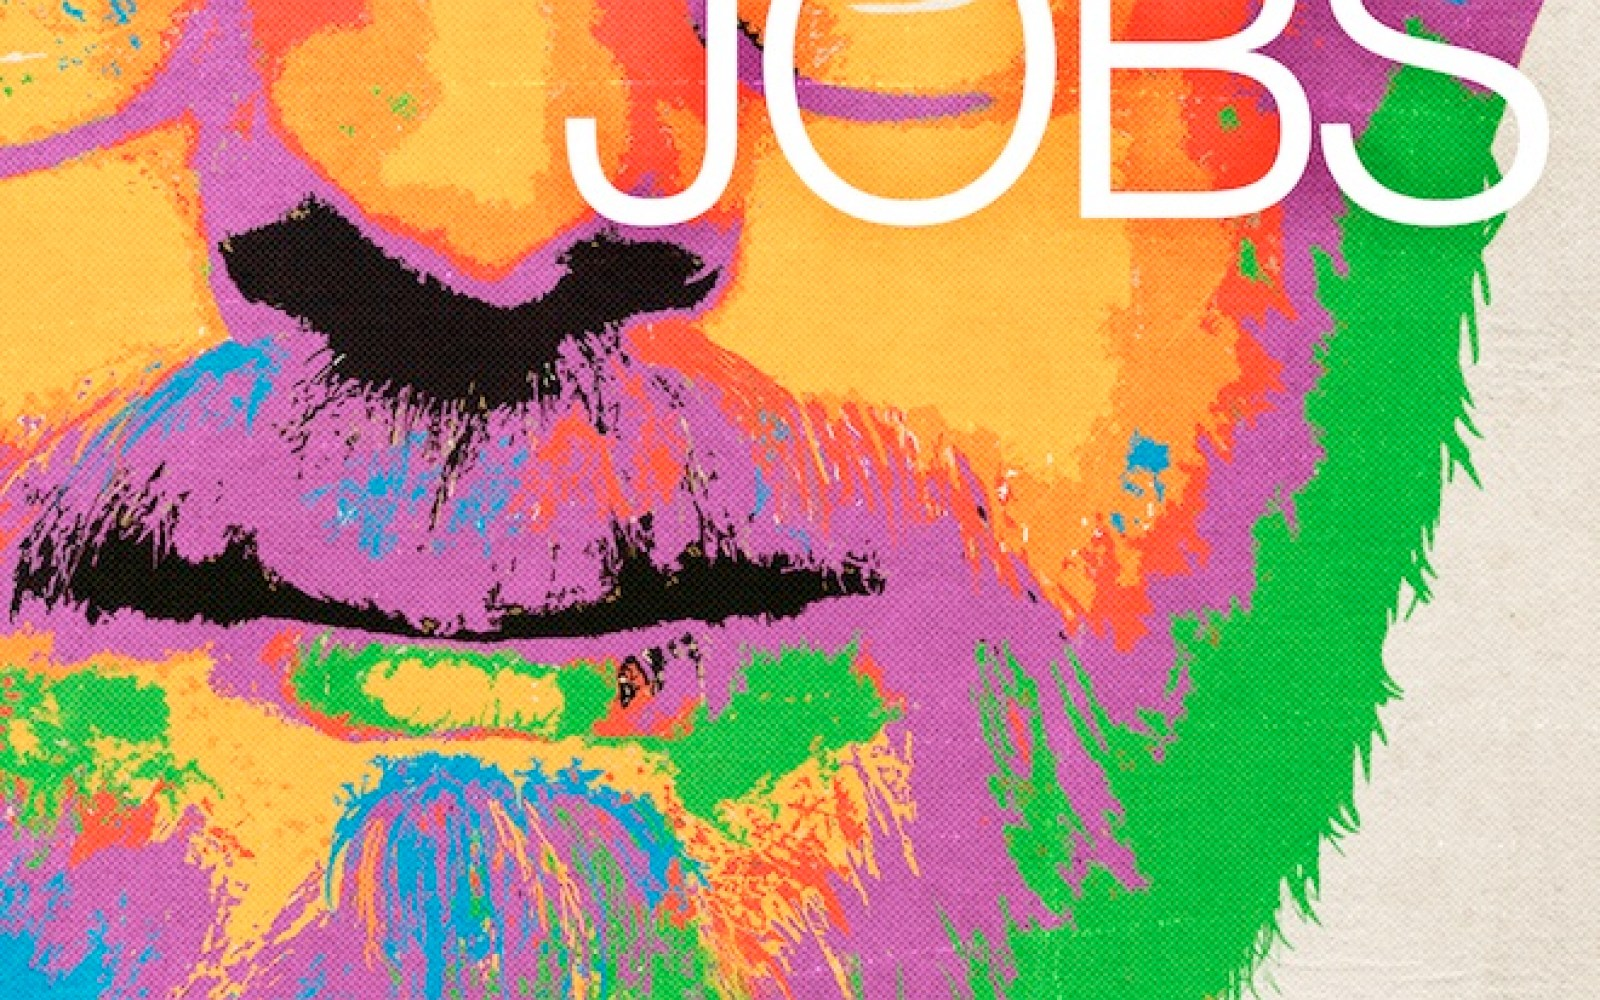 Ashton Kutcher's Jobs movie gets an official psychedelic poster